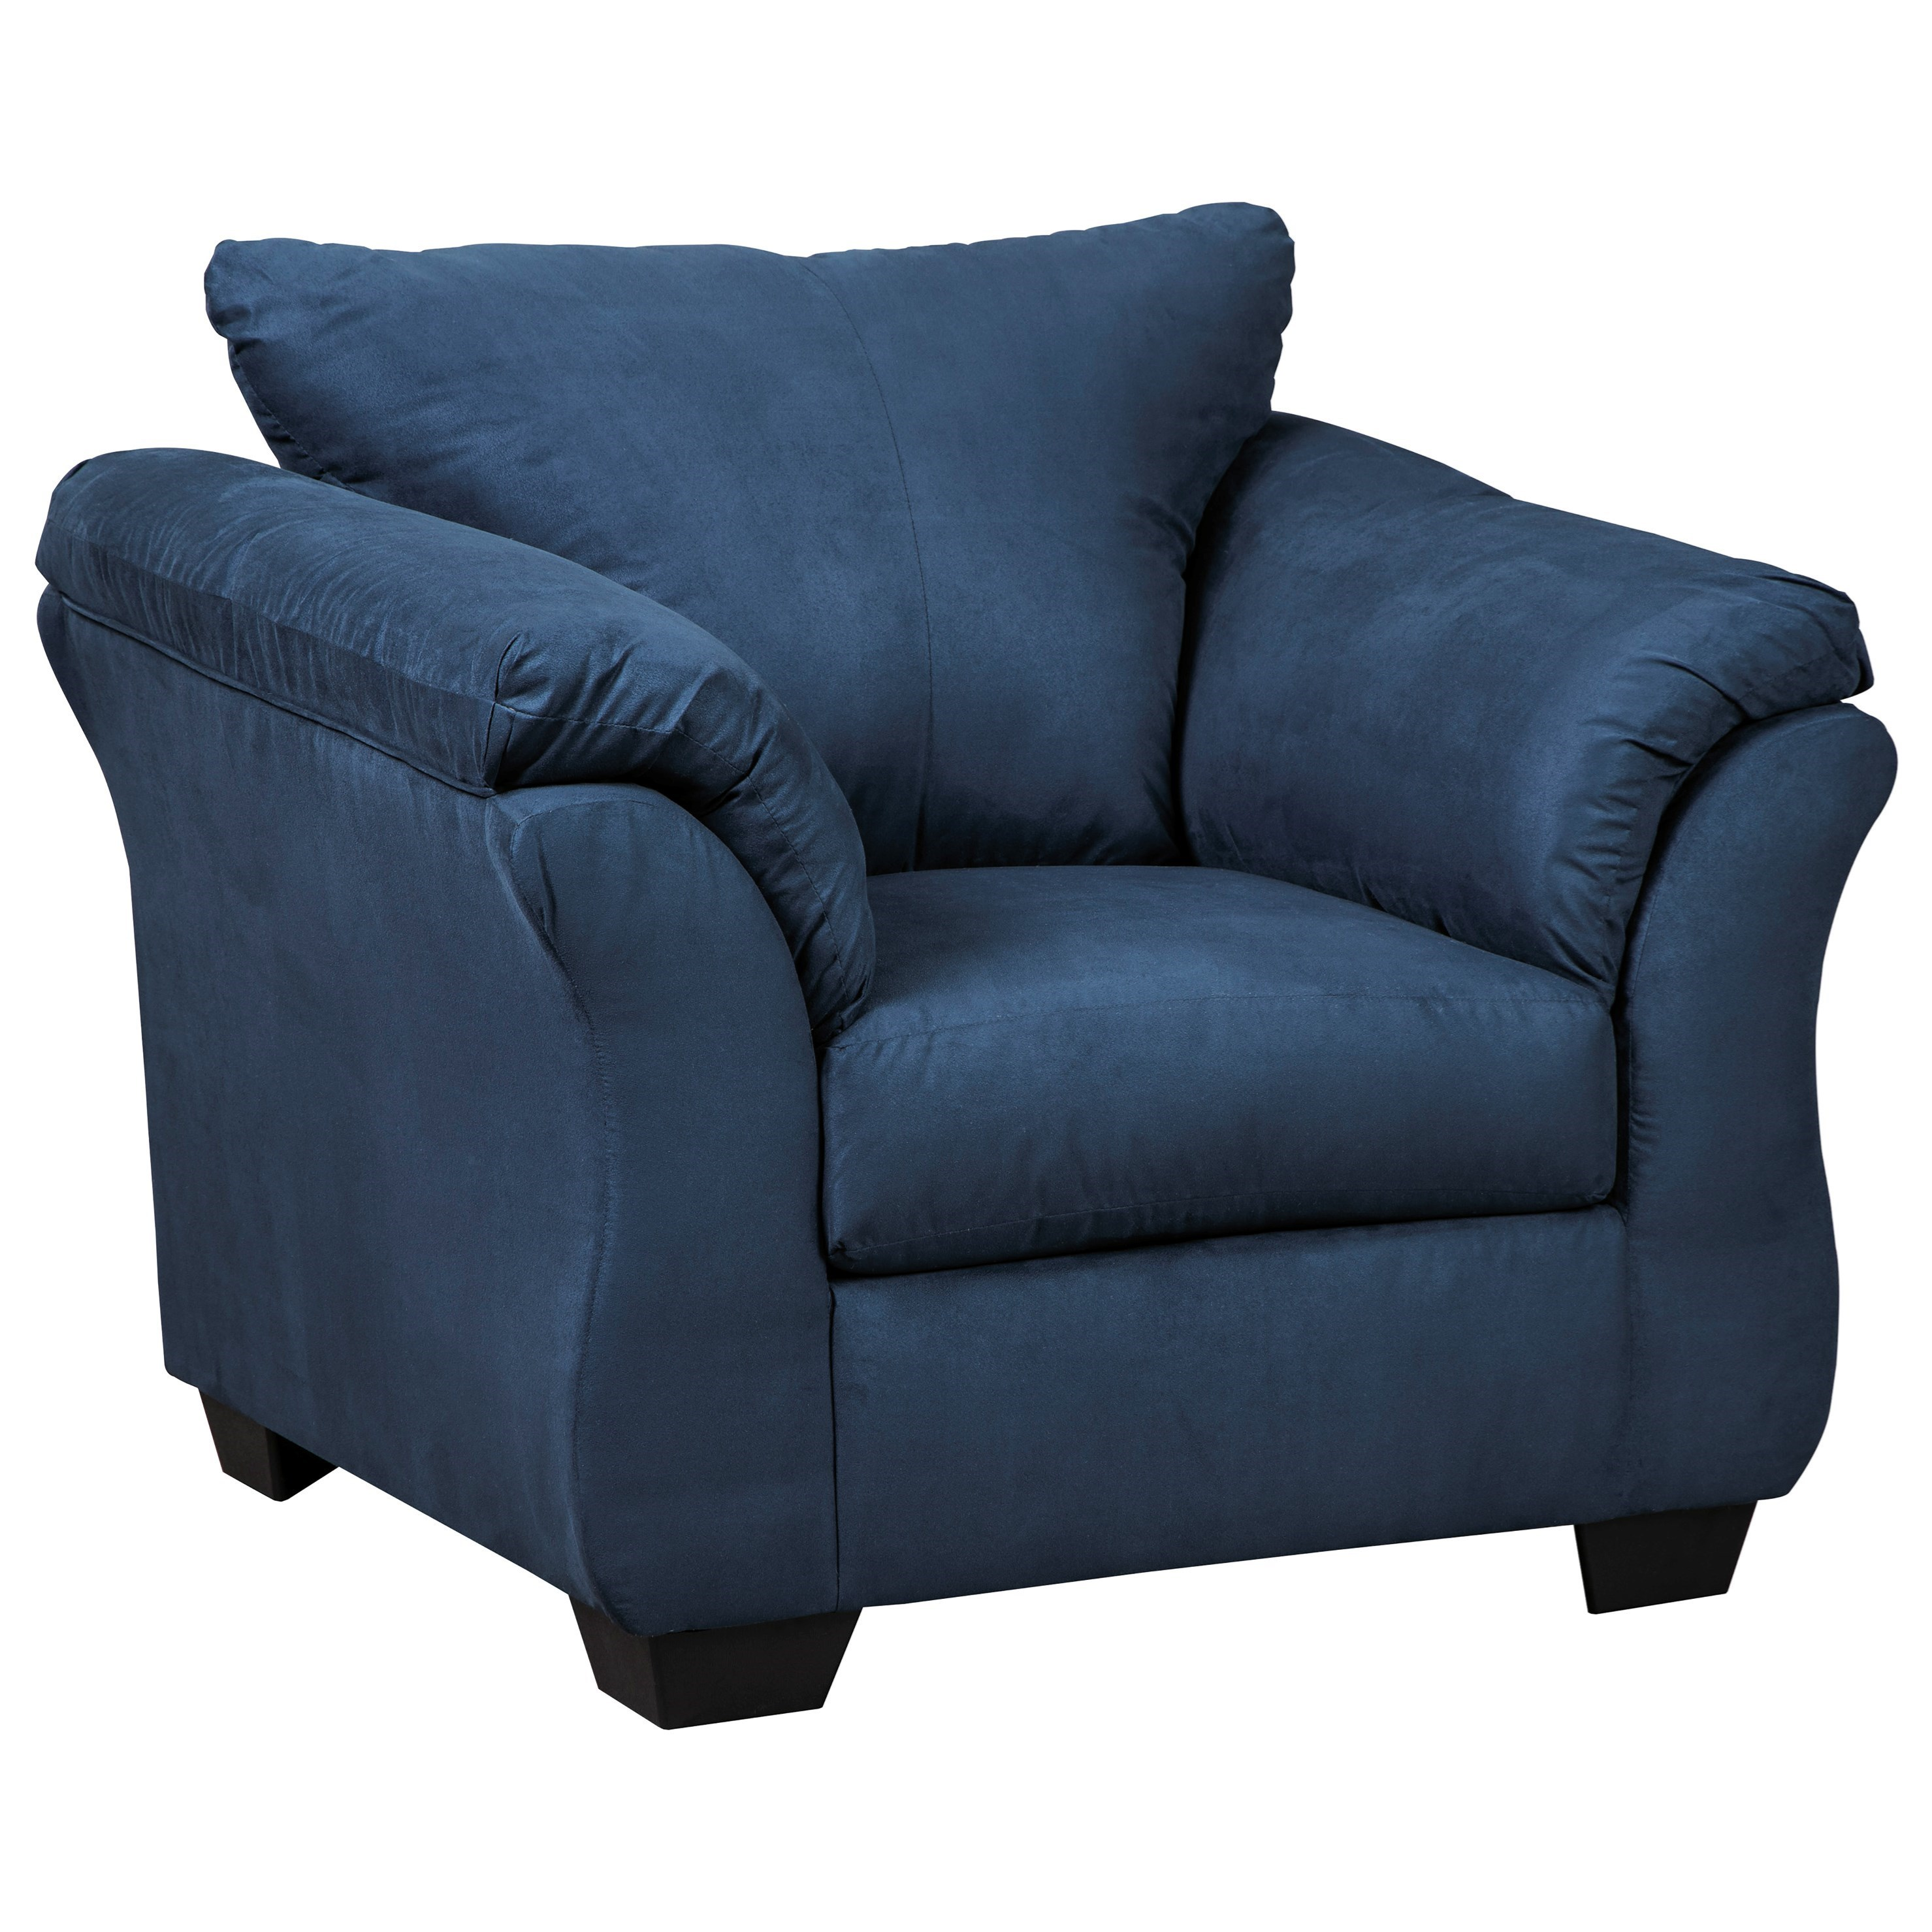 Darcy - Blue Upholstered Chair by Ashley at Morris Home